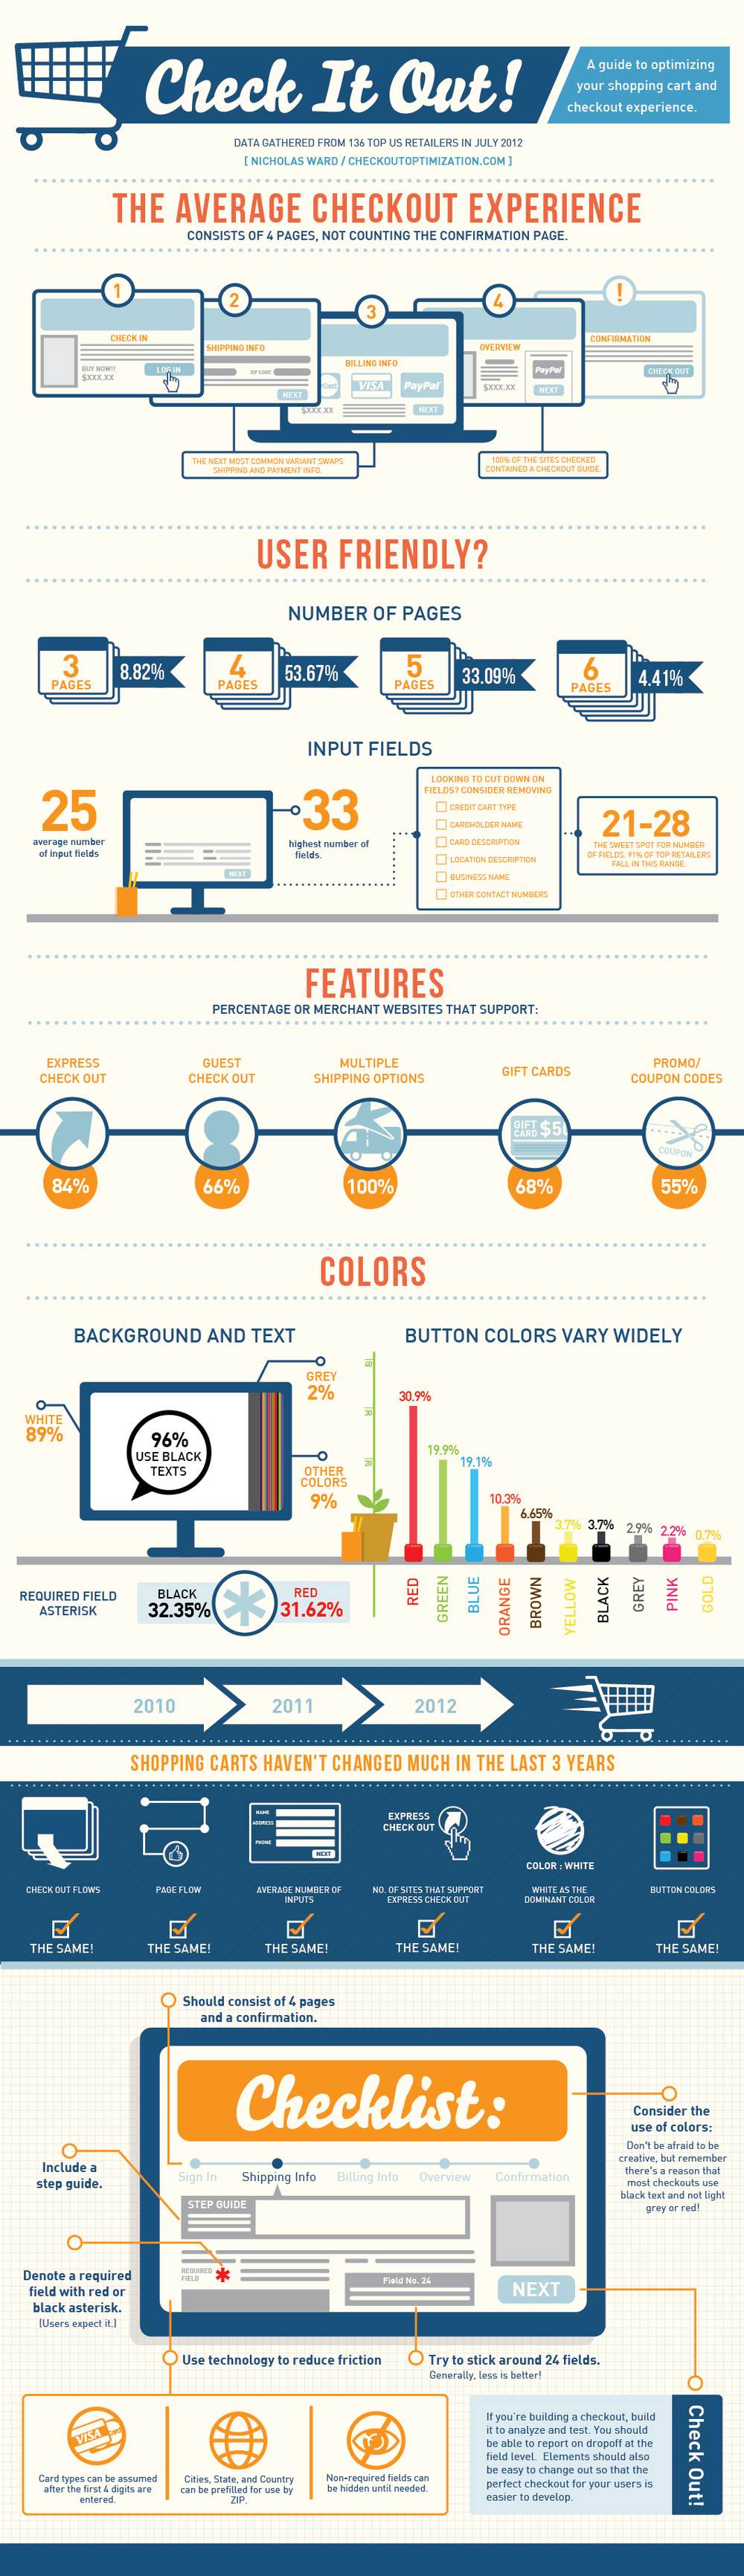 The Online Shopping Cart Experience infographic